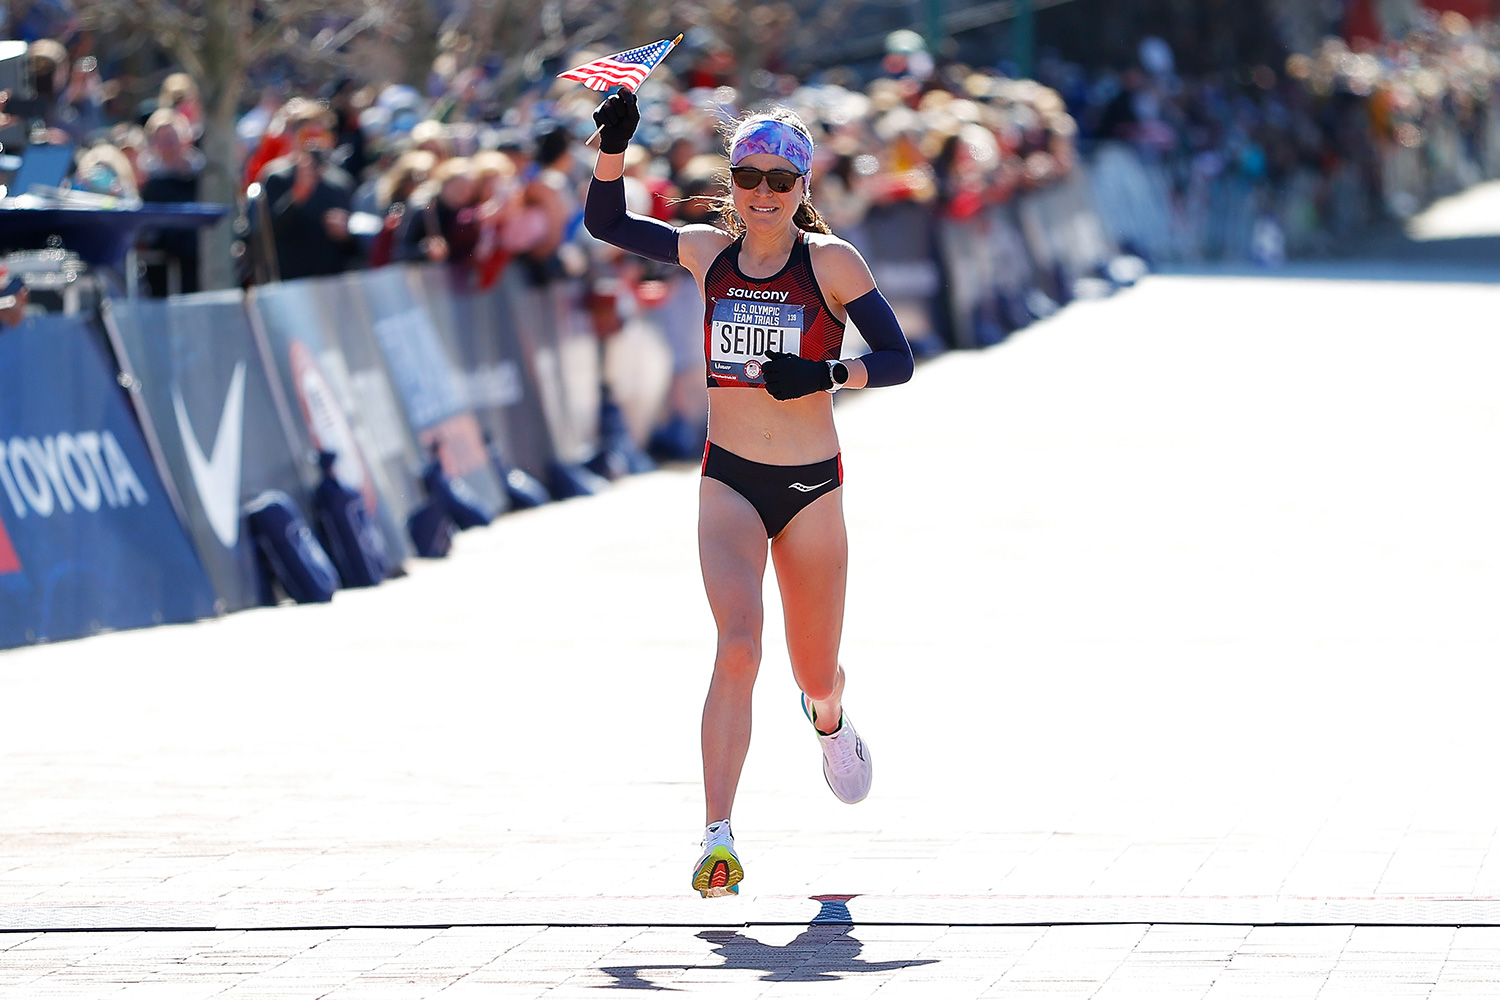 Molly Seidel reacts as she crosses the finish line in second play during the Women's U.S. Olympic marathon team trials on February 29, 2020 in Atlanta, Georgia